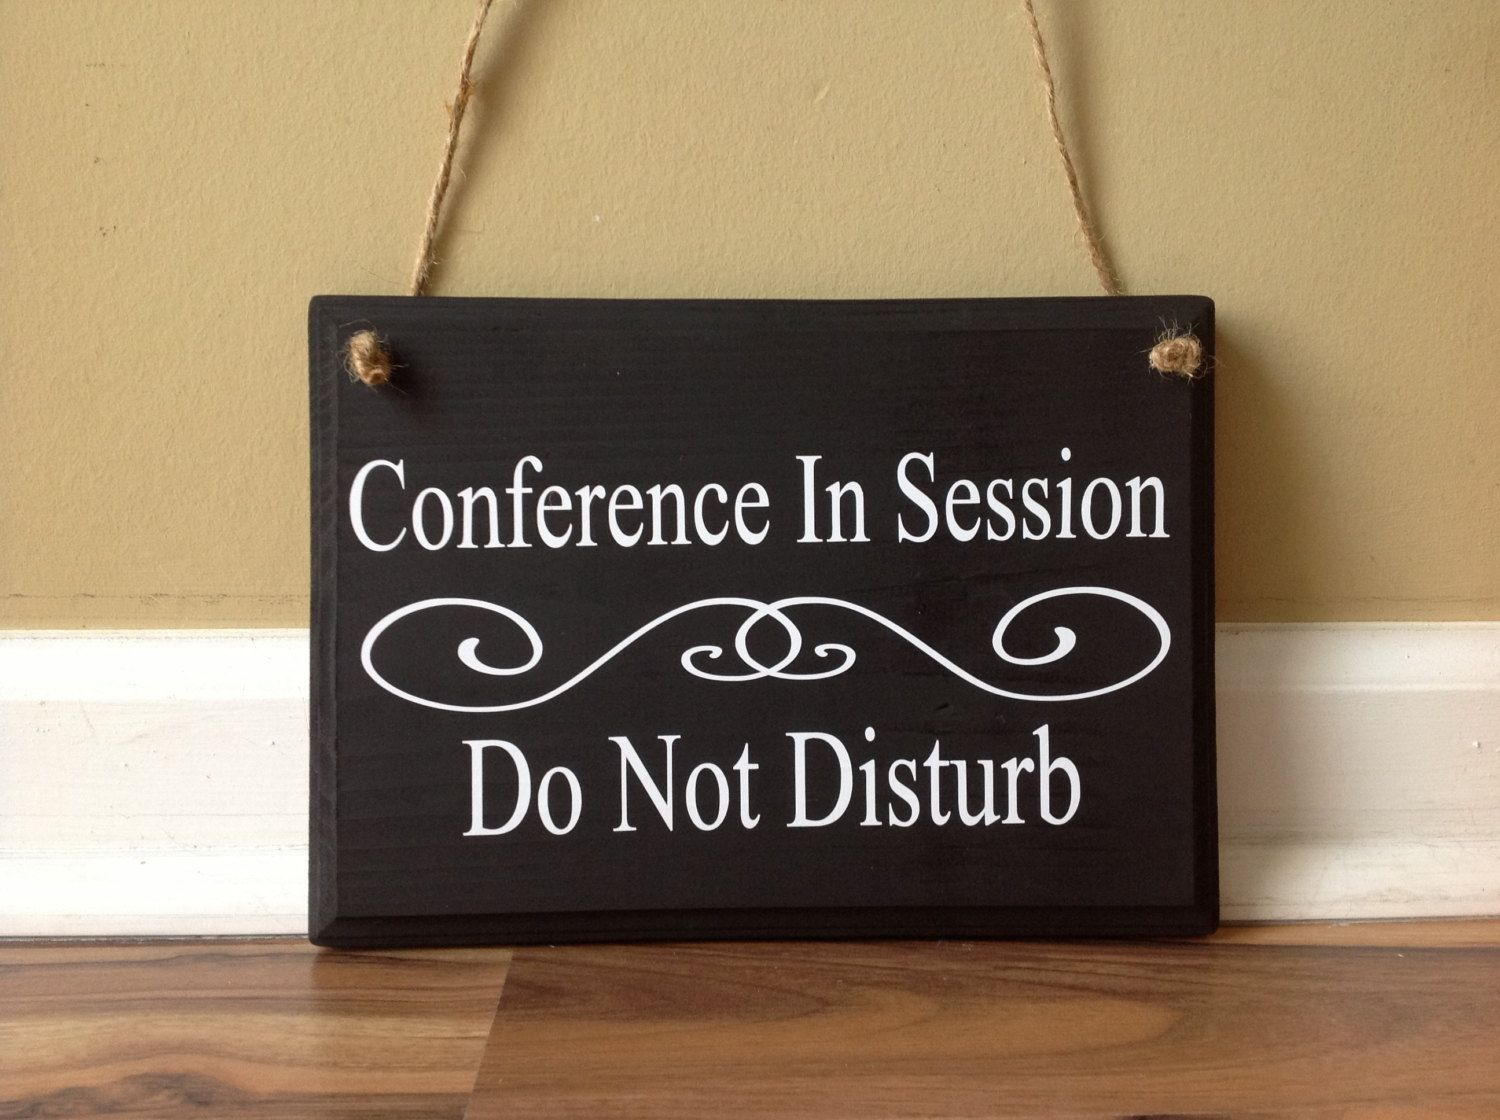 Conference room sign in session do not disturb class door